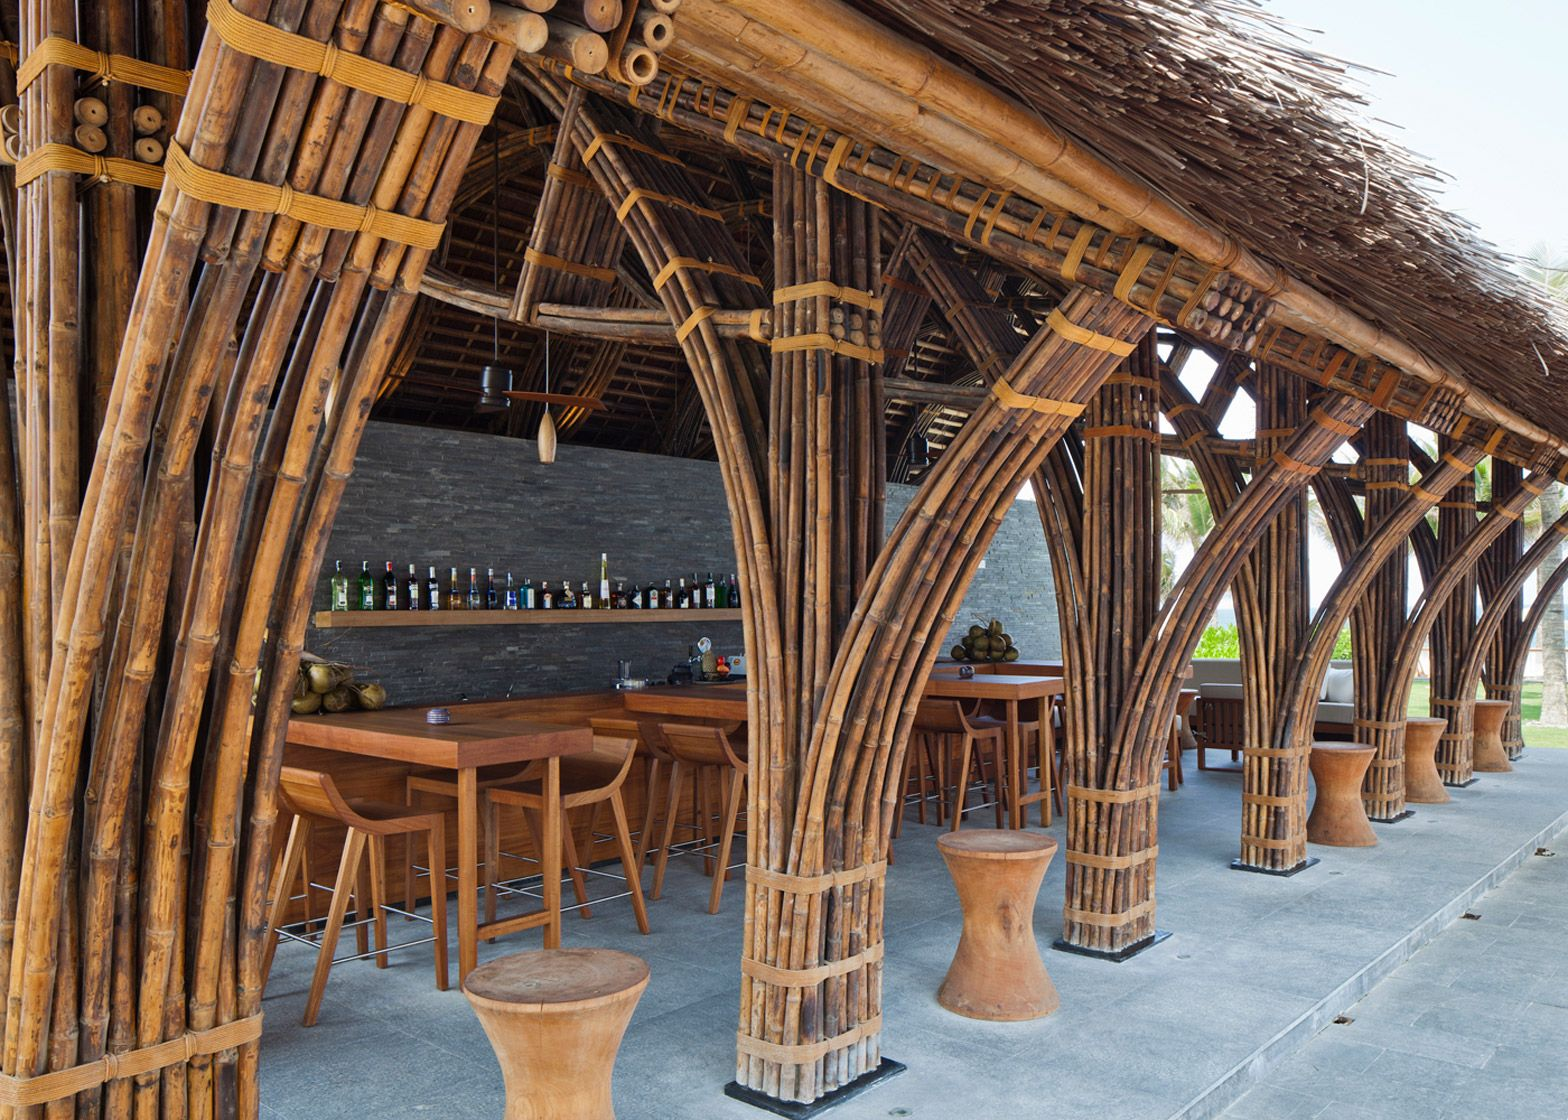 vo trong nghia adds bamboo restaurant and bar to naman spa